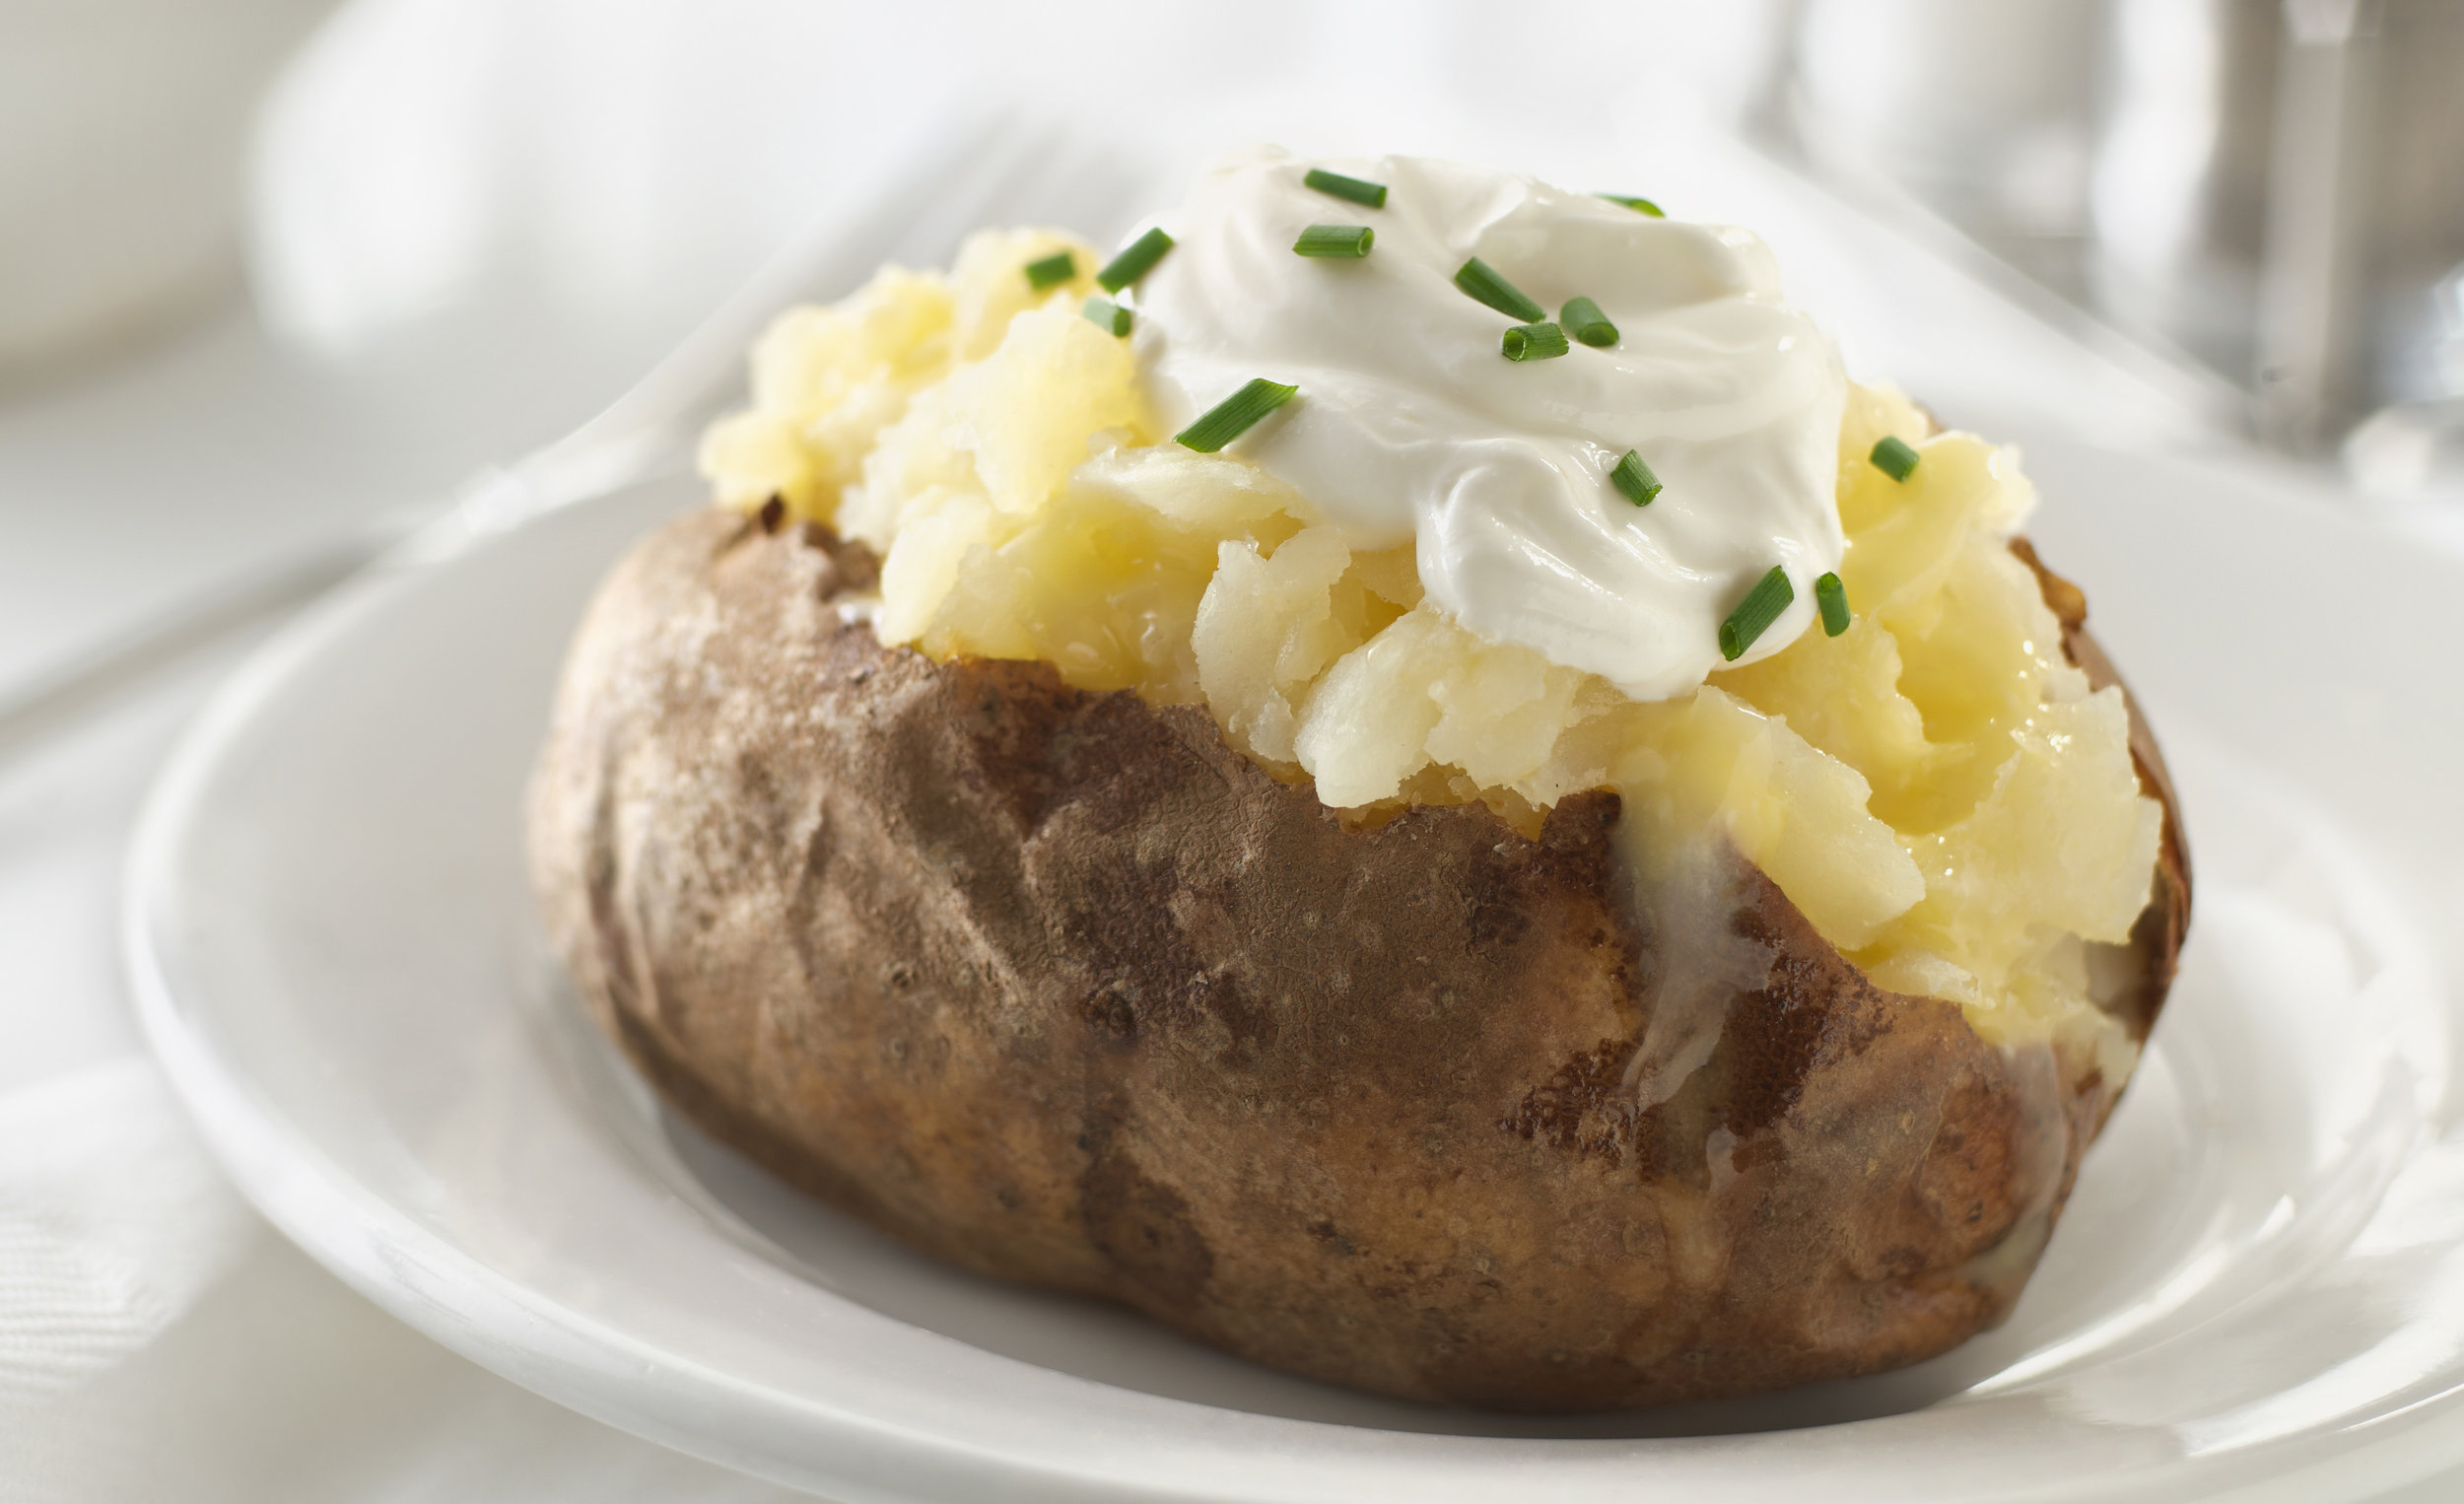 baked potato with sour cream and chives copy.jpg